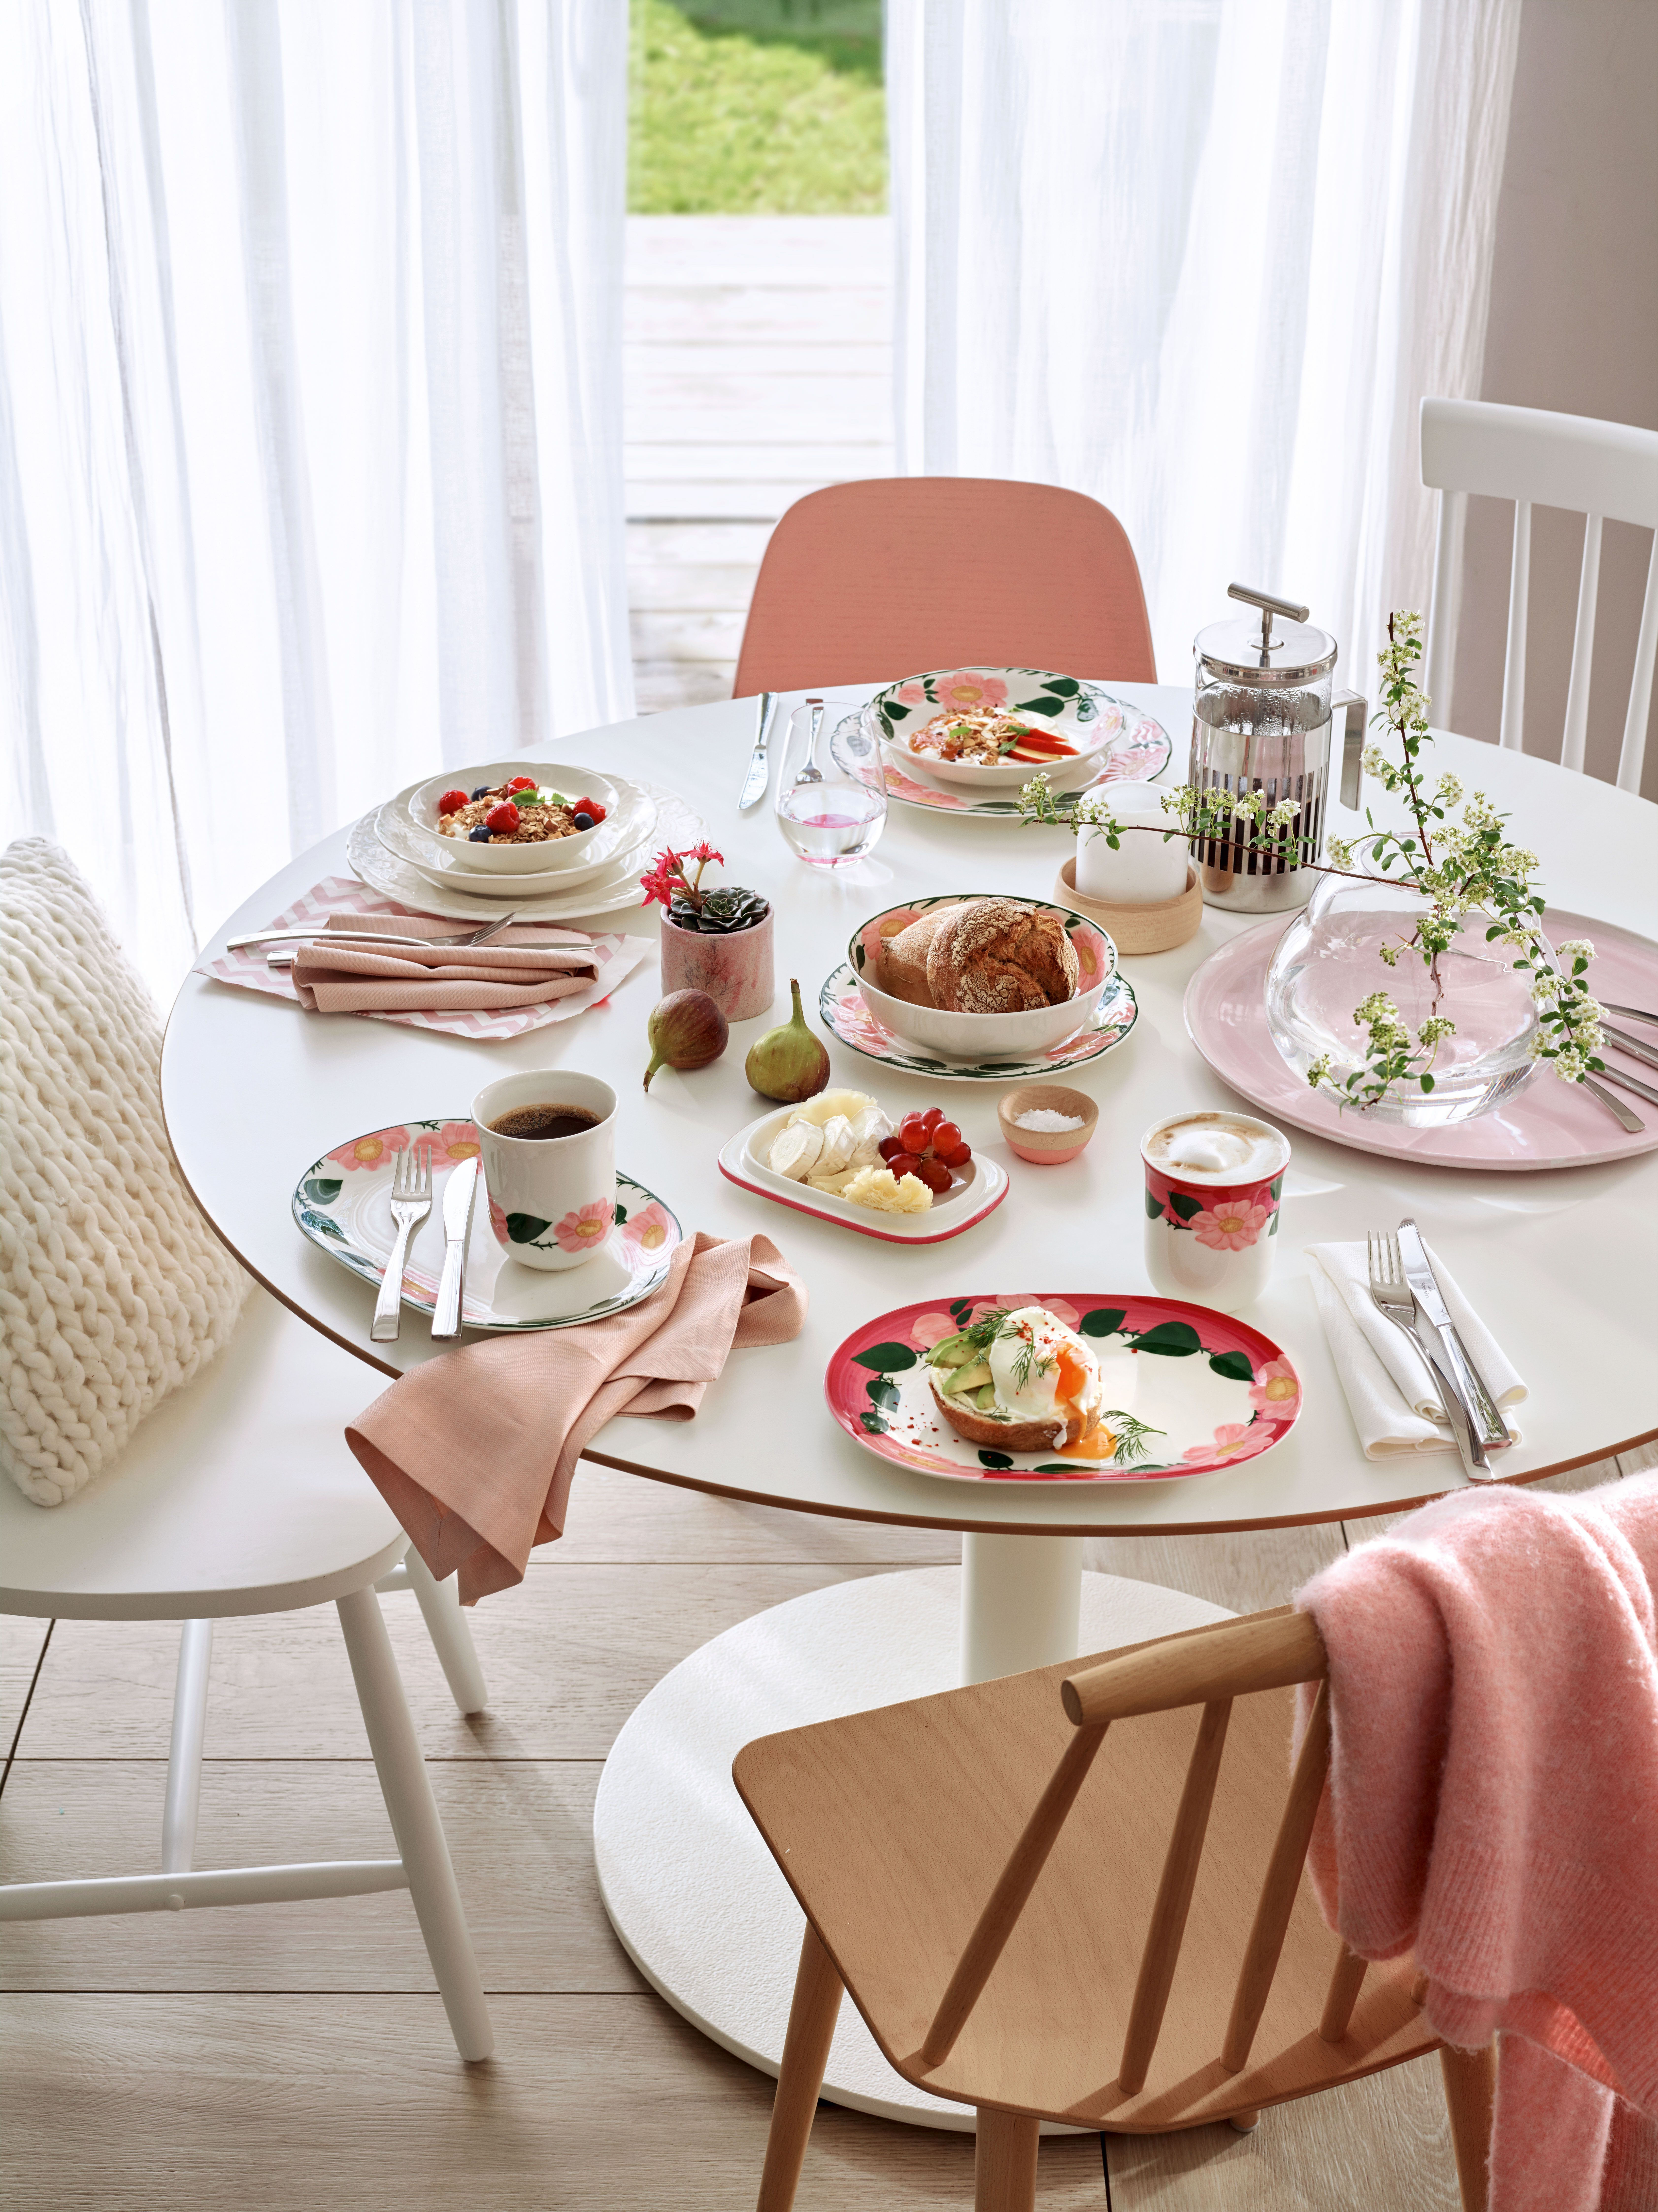 rose sauvage by villeroy boch discover our new designed collection wildrose dinnerware. Black Bedroom Furniture Sets. Home Design Ideas